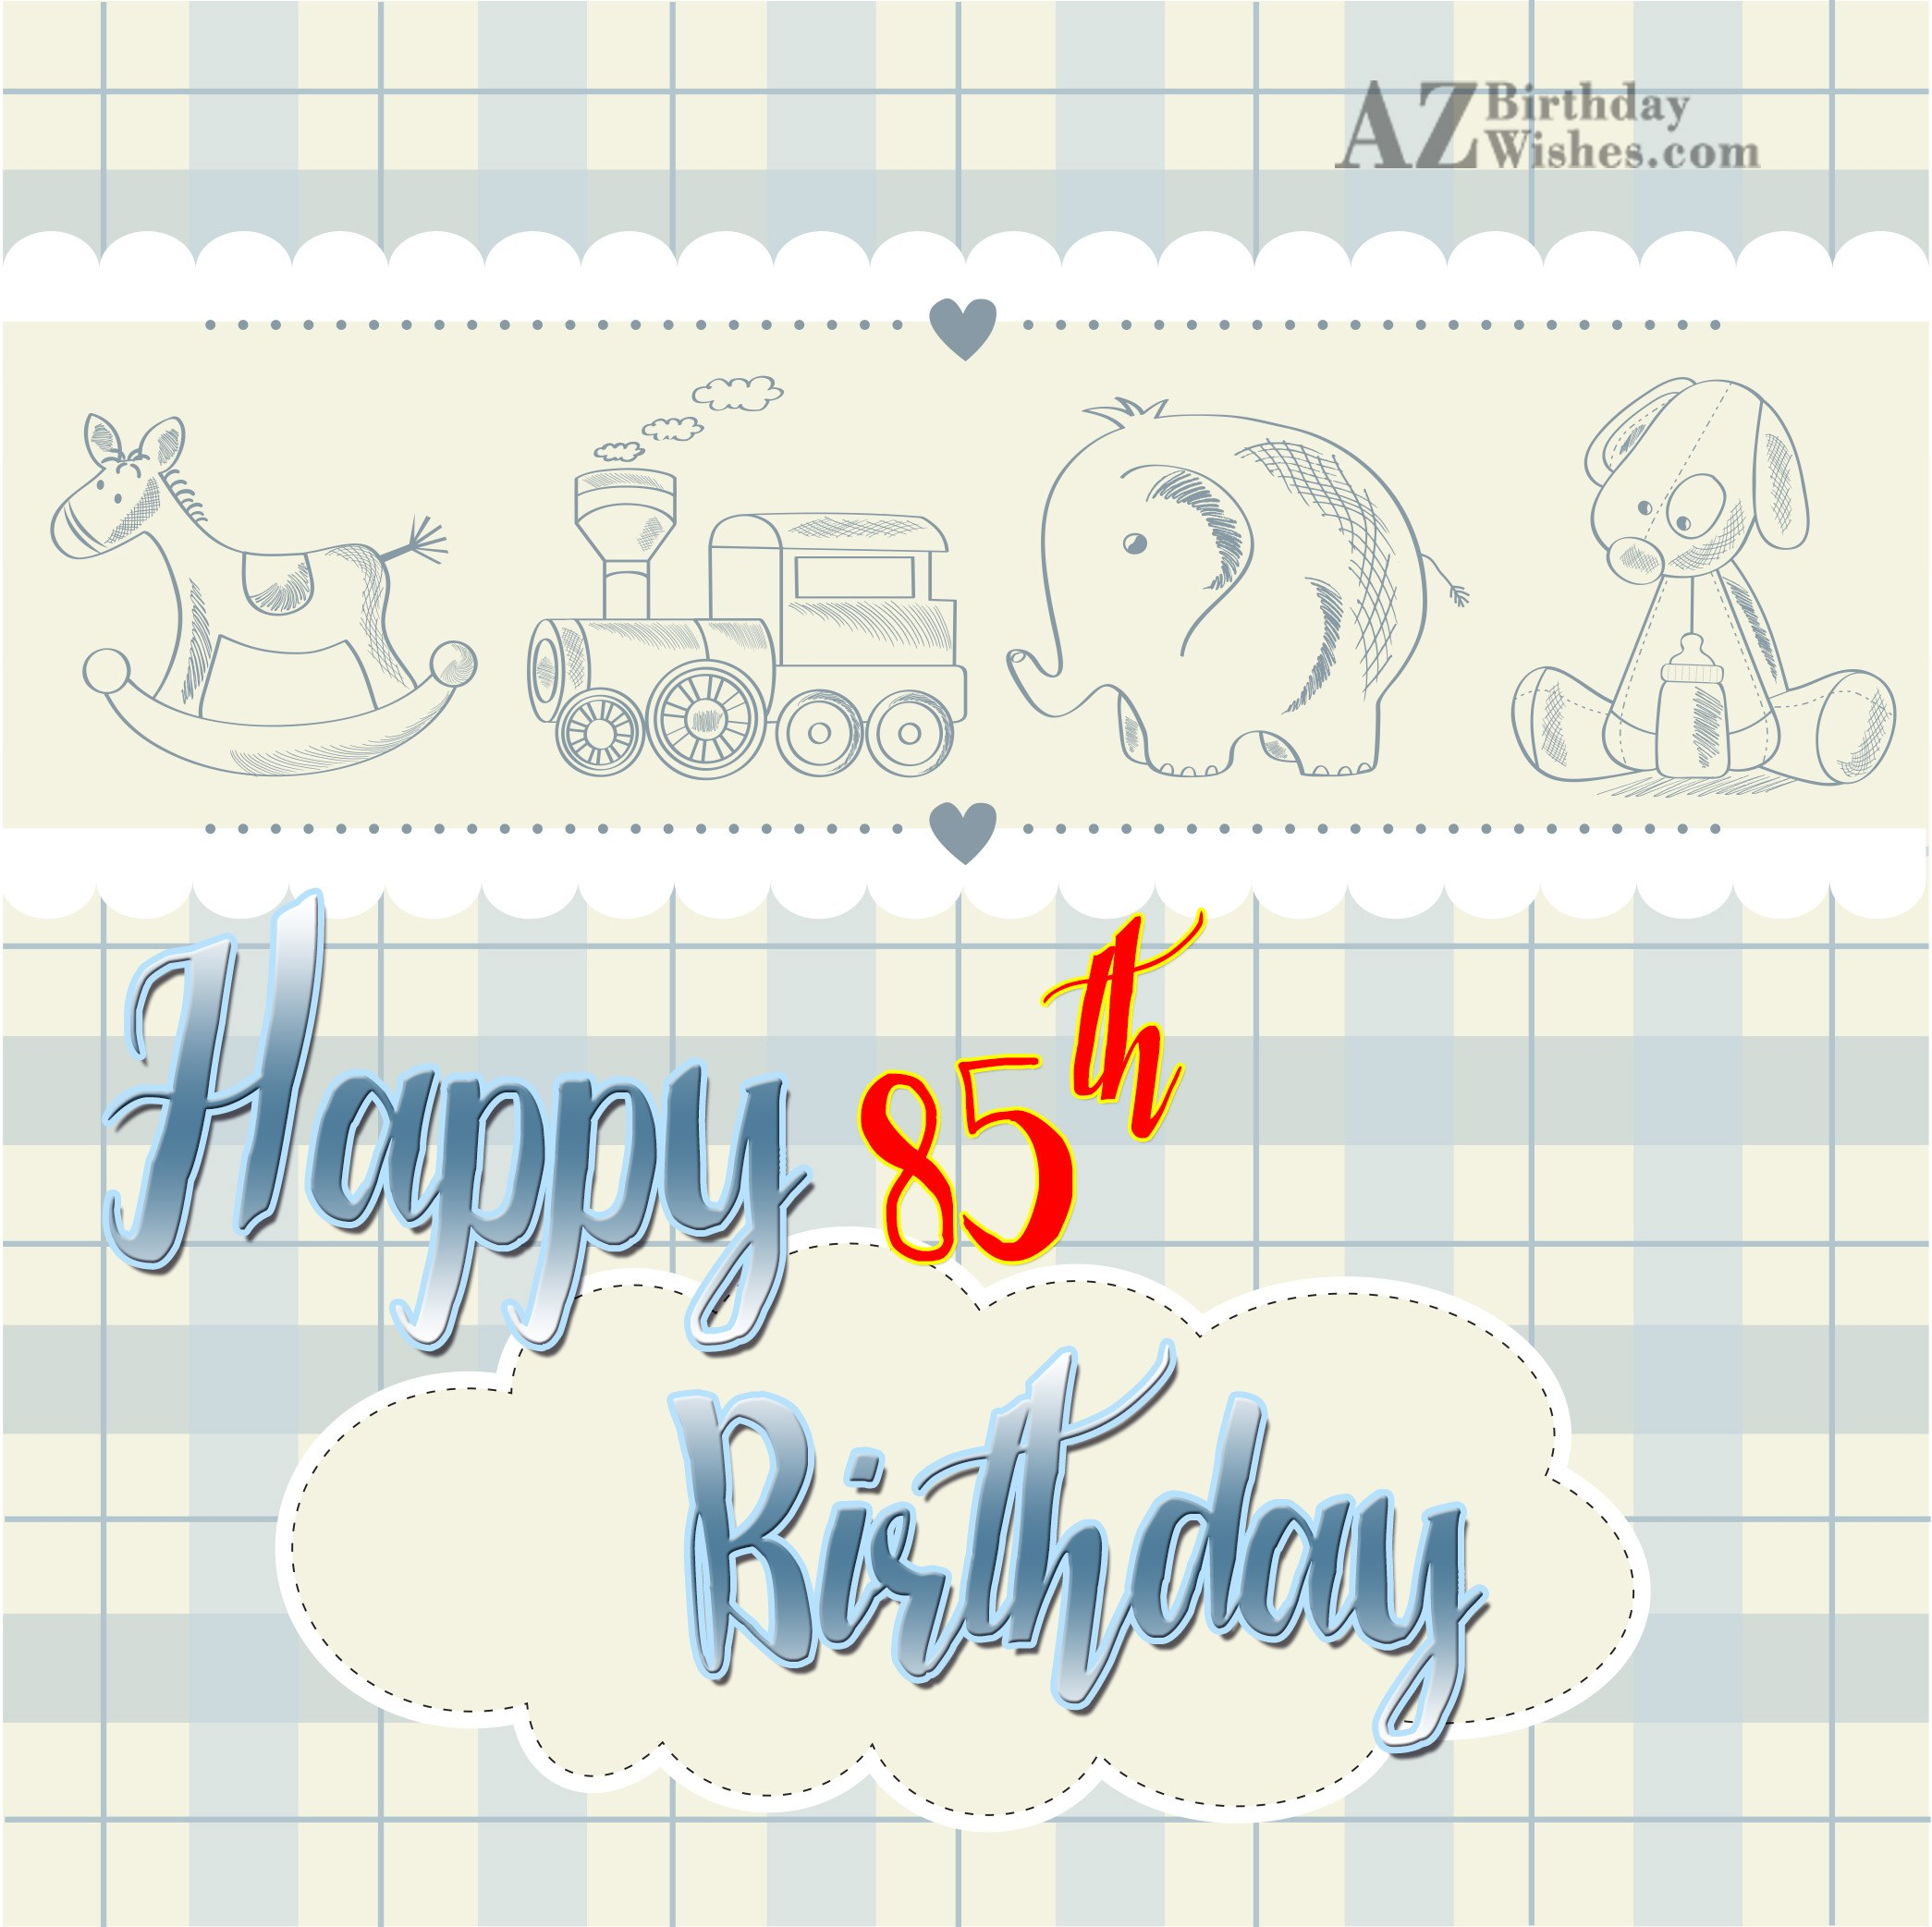 85th Birthday Wishes